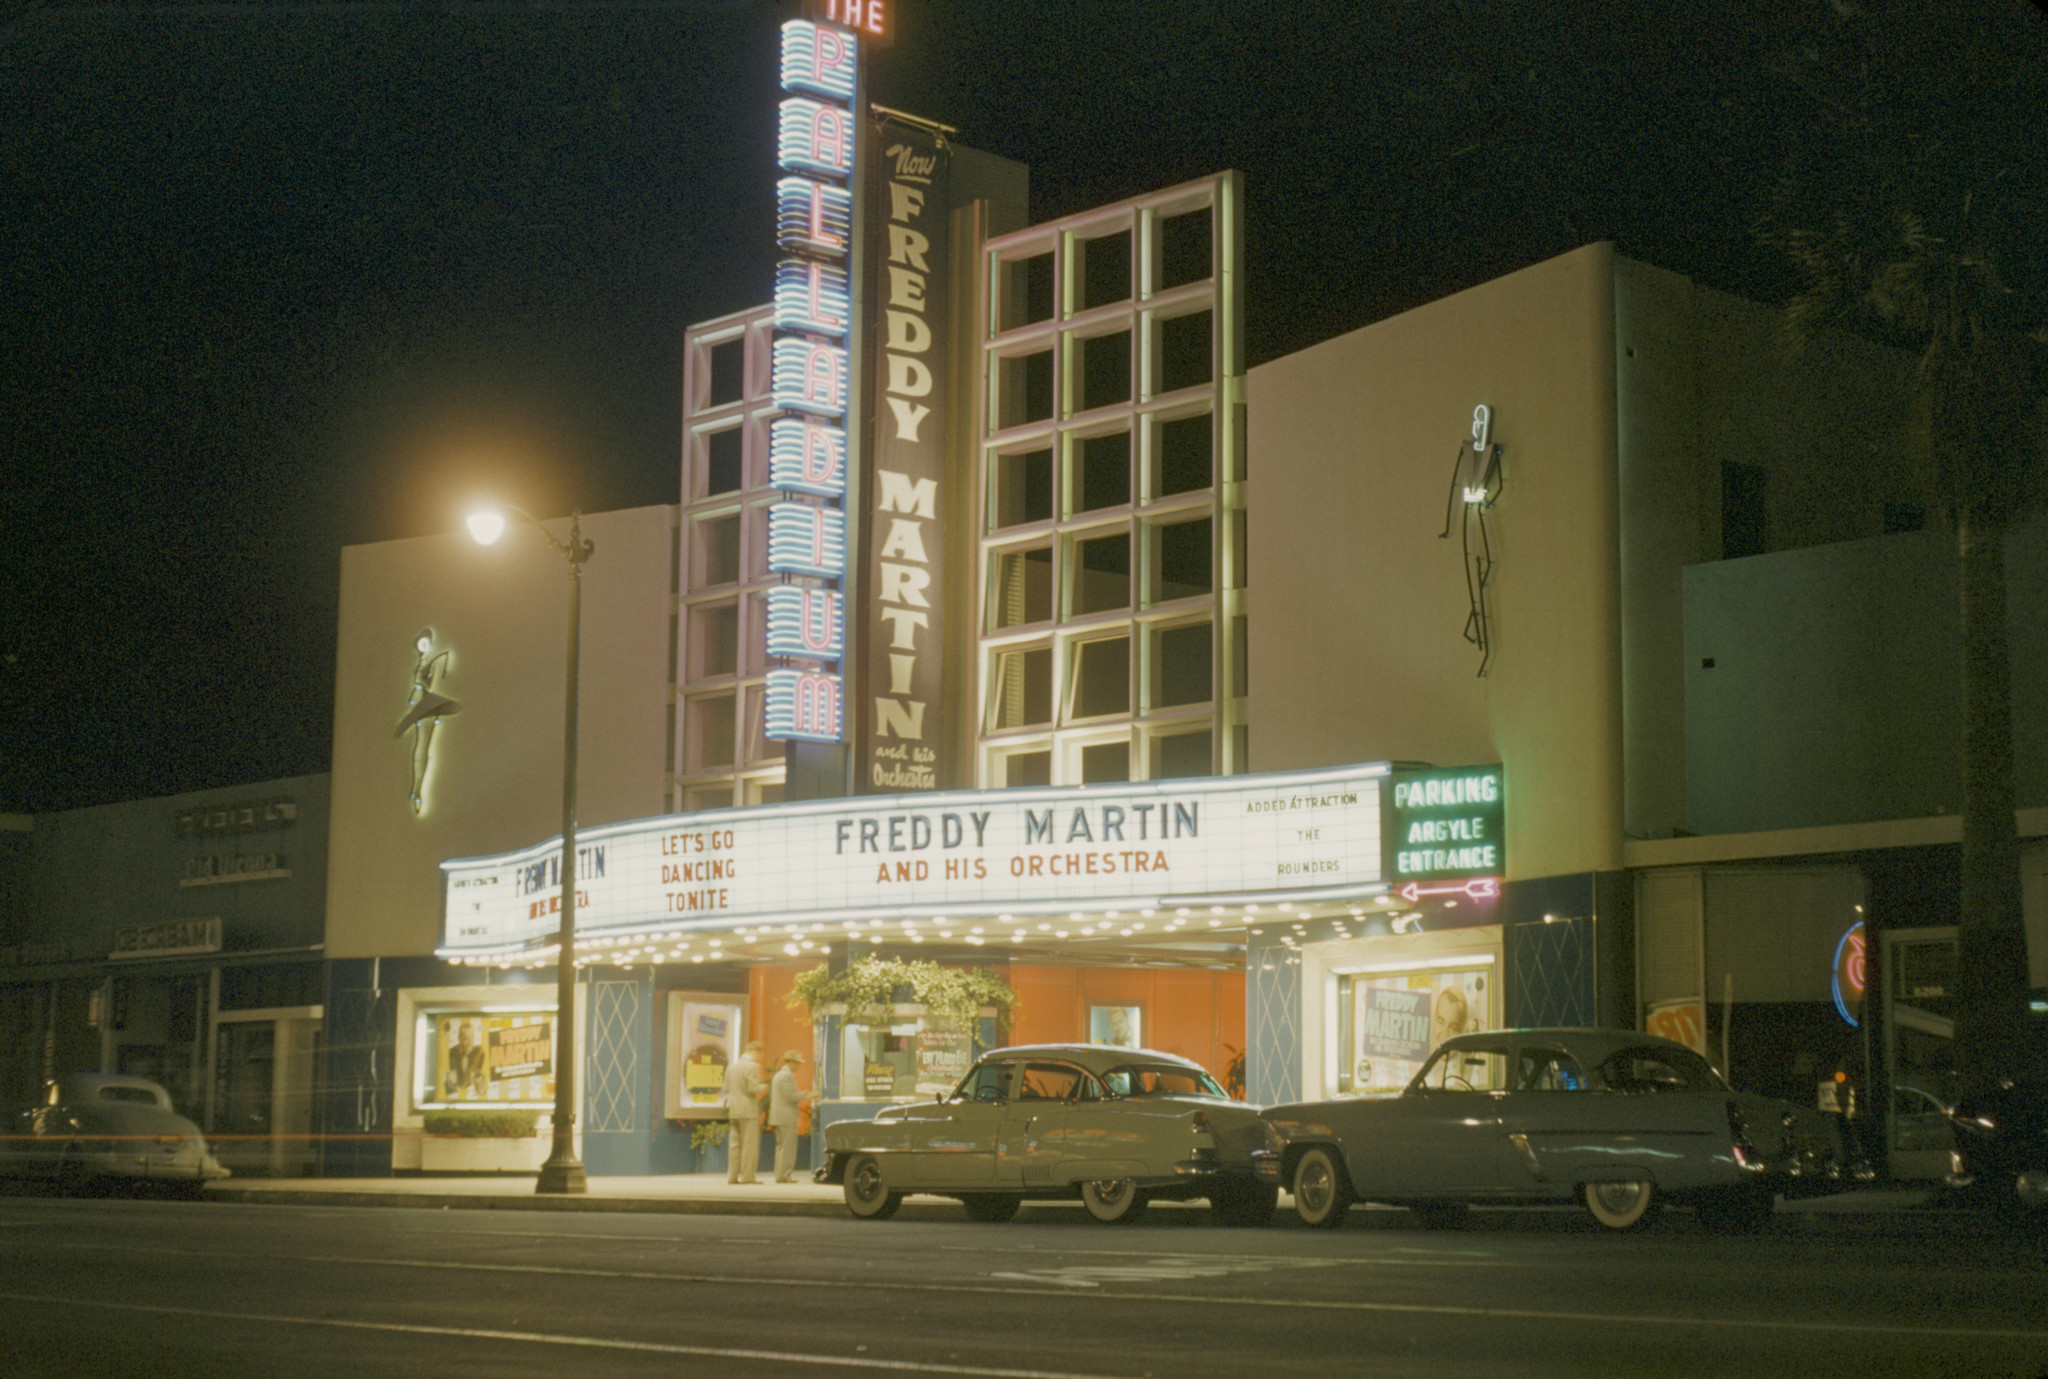 The Hollywood Palladium around 1950.